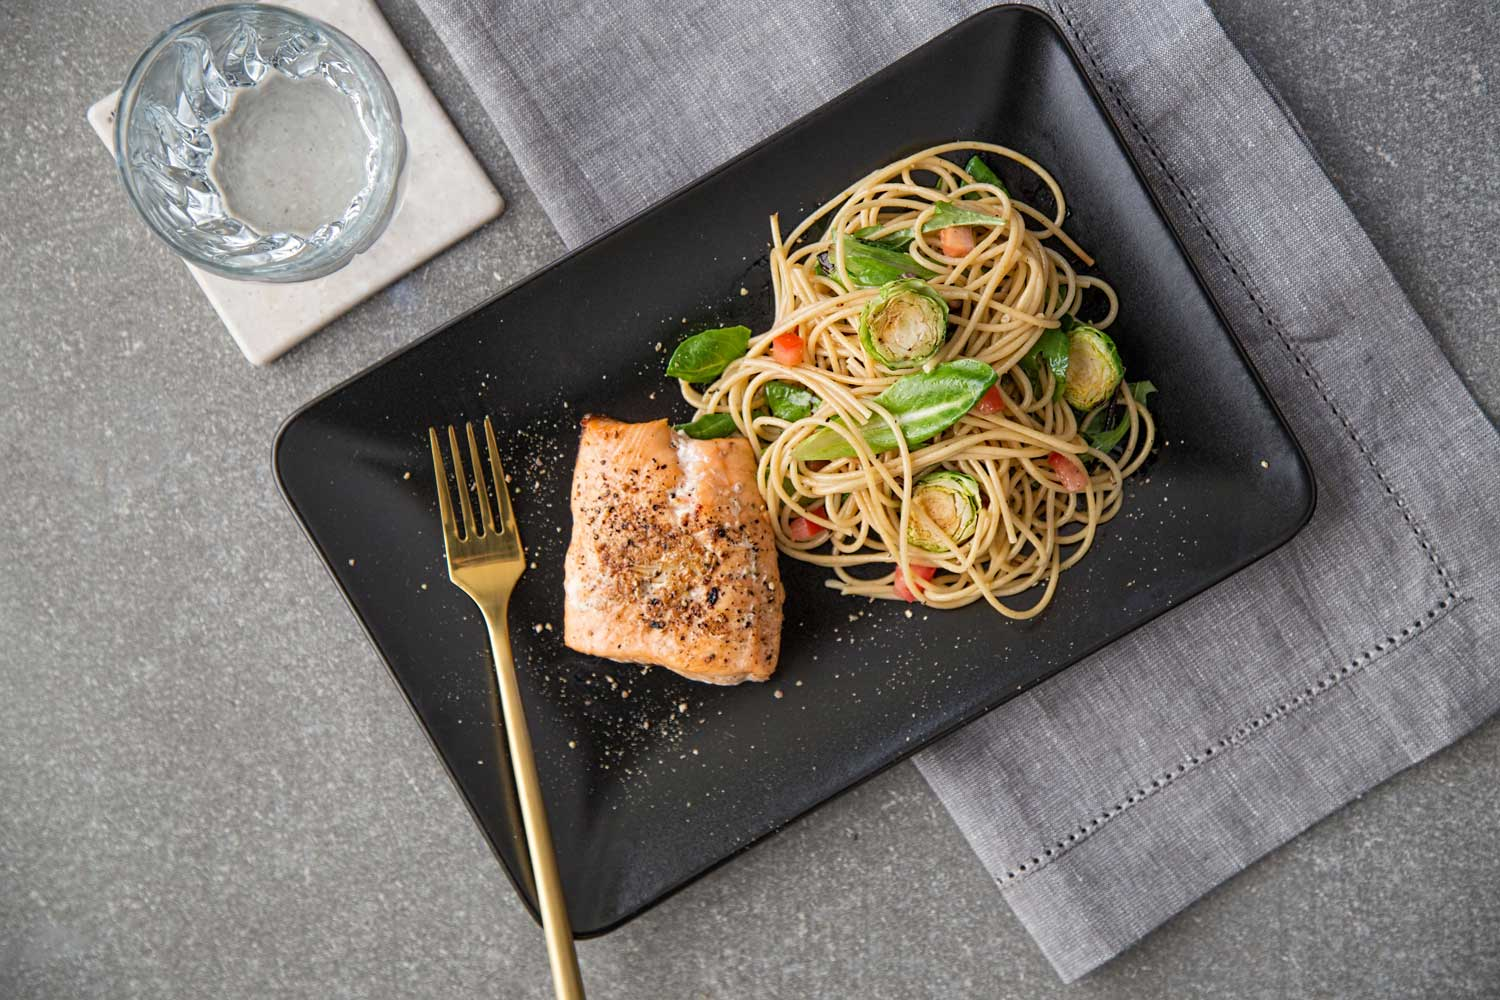 Clean Eating Meal Salmon with Side of Pasta